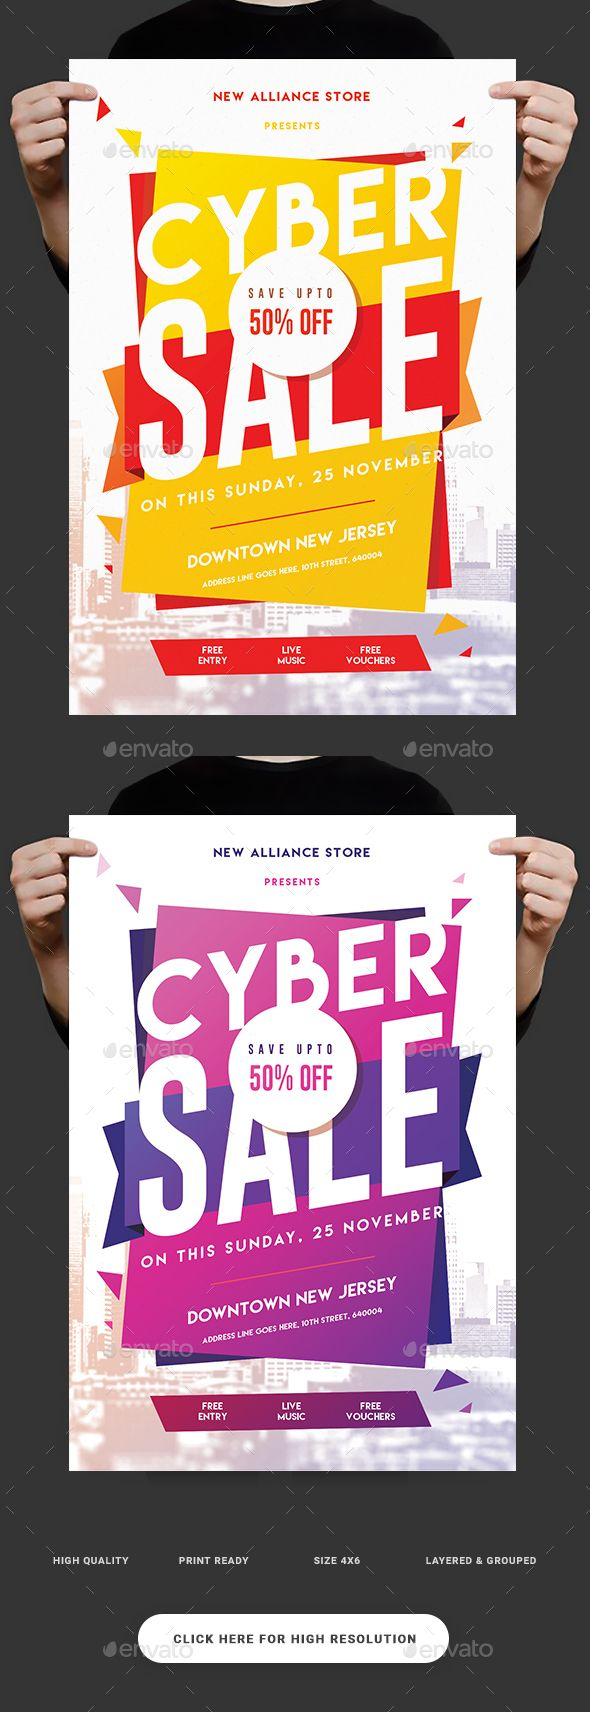 Cyber Sale Flyer Template PSD